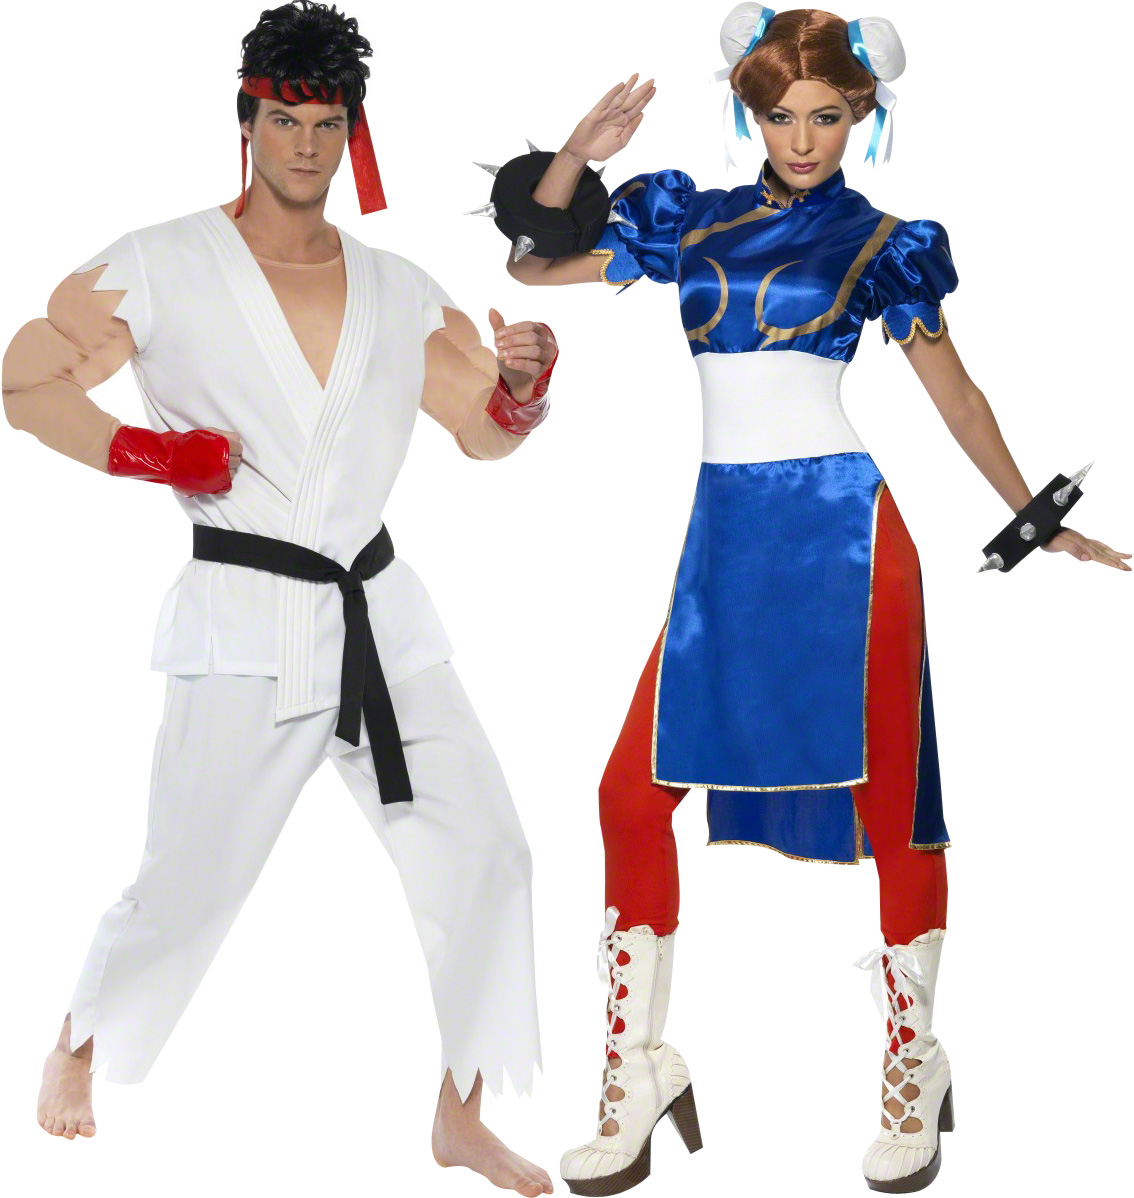 D guisement couple street fighter costume chun li et ryu jeu vid o - Deguisement halloween couple ...